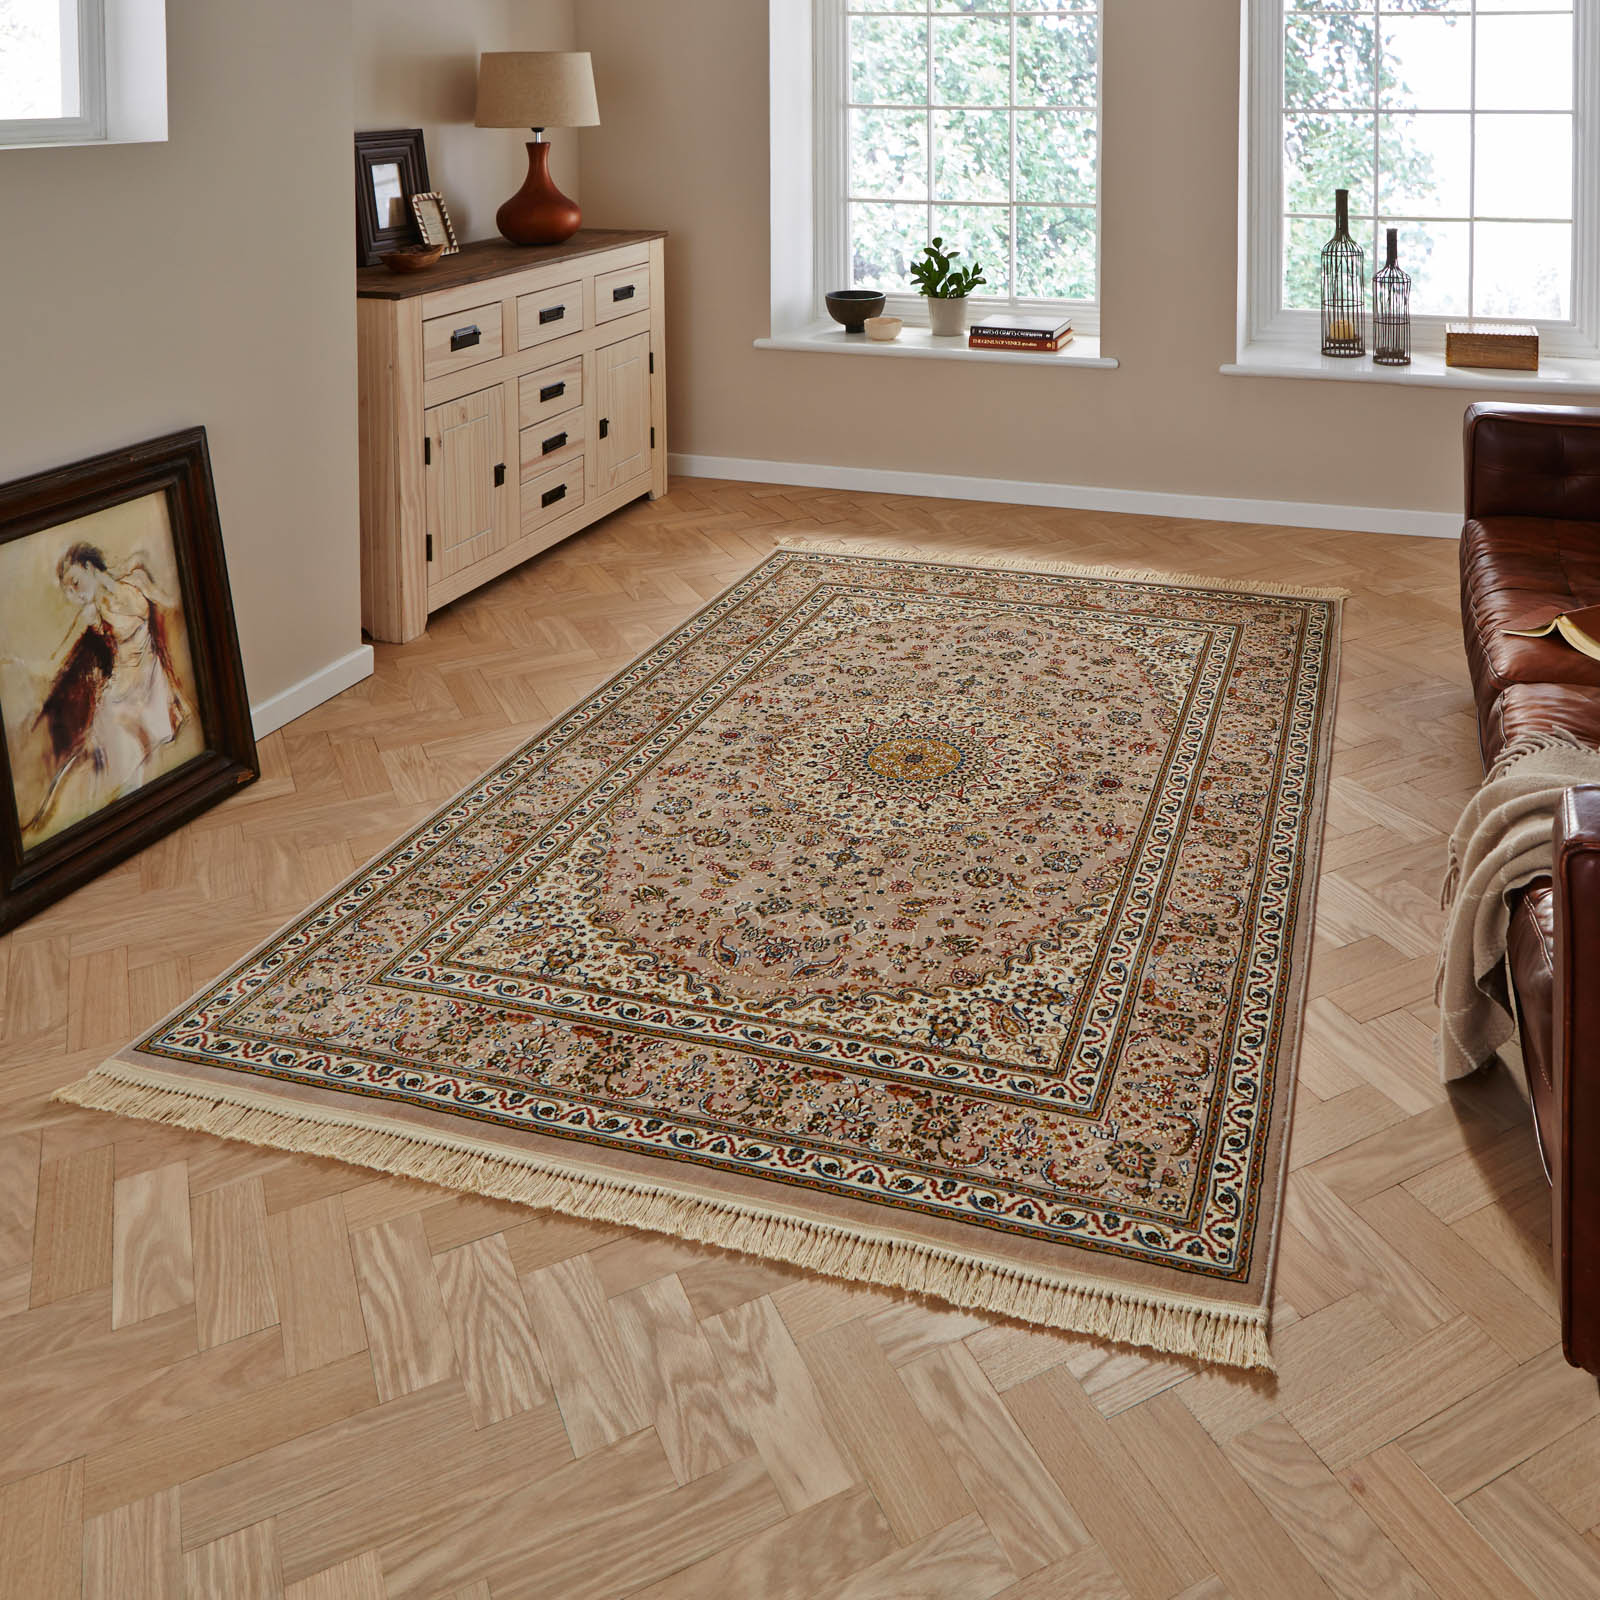 Regal 0227A Rugs in Beige